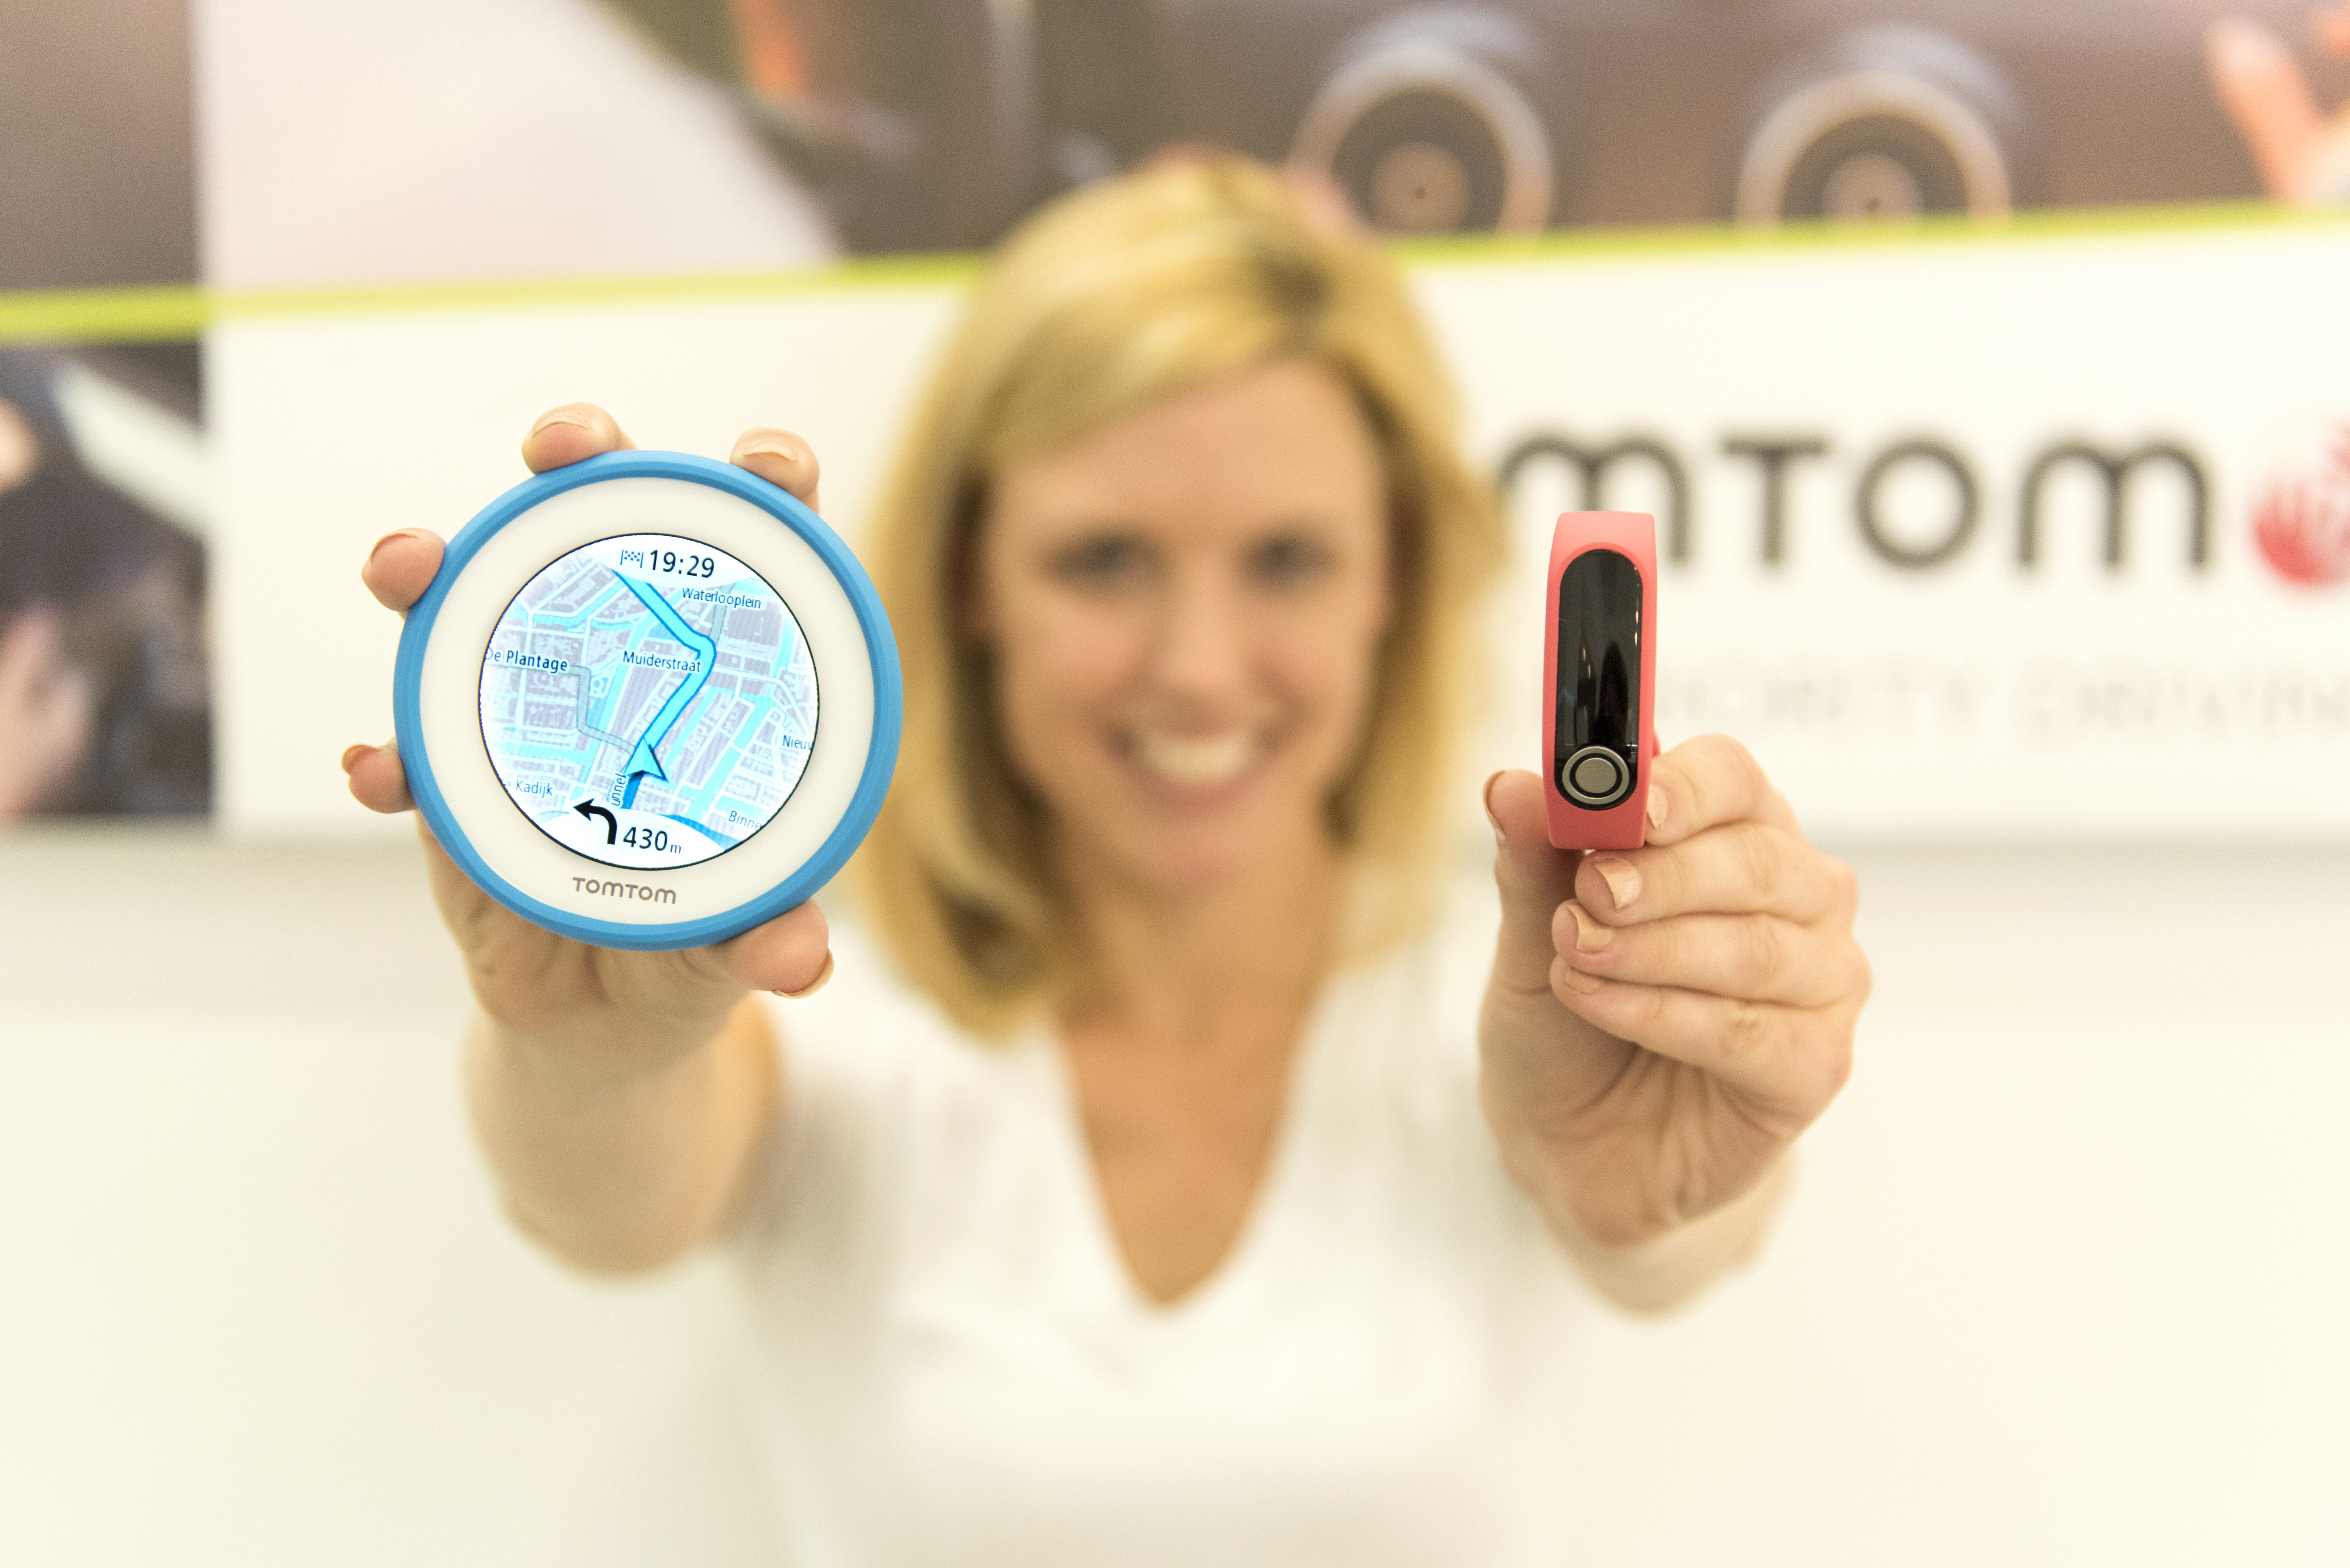 TomTom introduces two world firsts today. TomTom VIO is the world's first navigation device for scooters, and TomTom TOUCH the first fitness tracker with body composition analysis. (Photo: Business Wire)